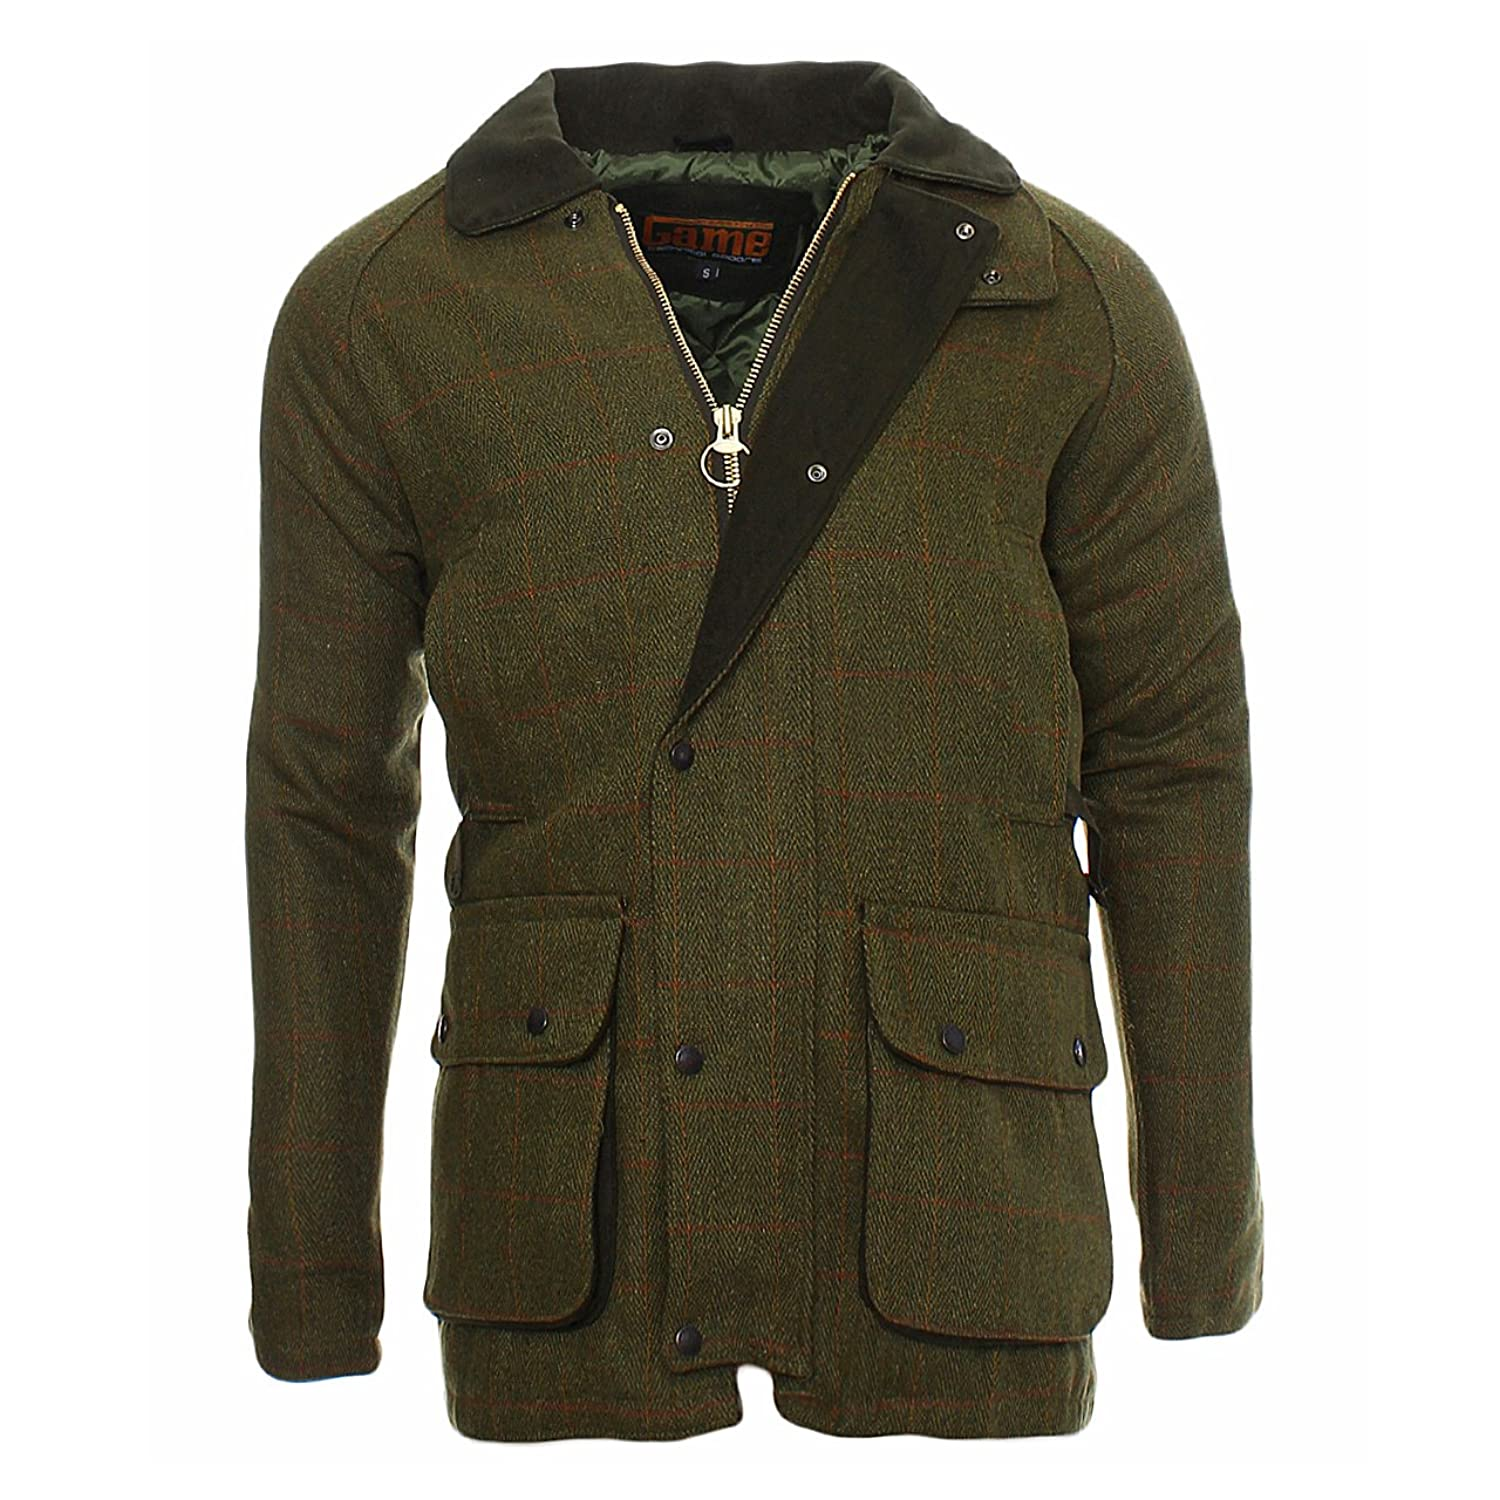 Game Tweed Herren Winterjacke Parka Parker Herrenmantel